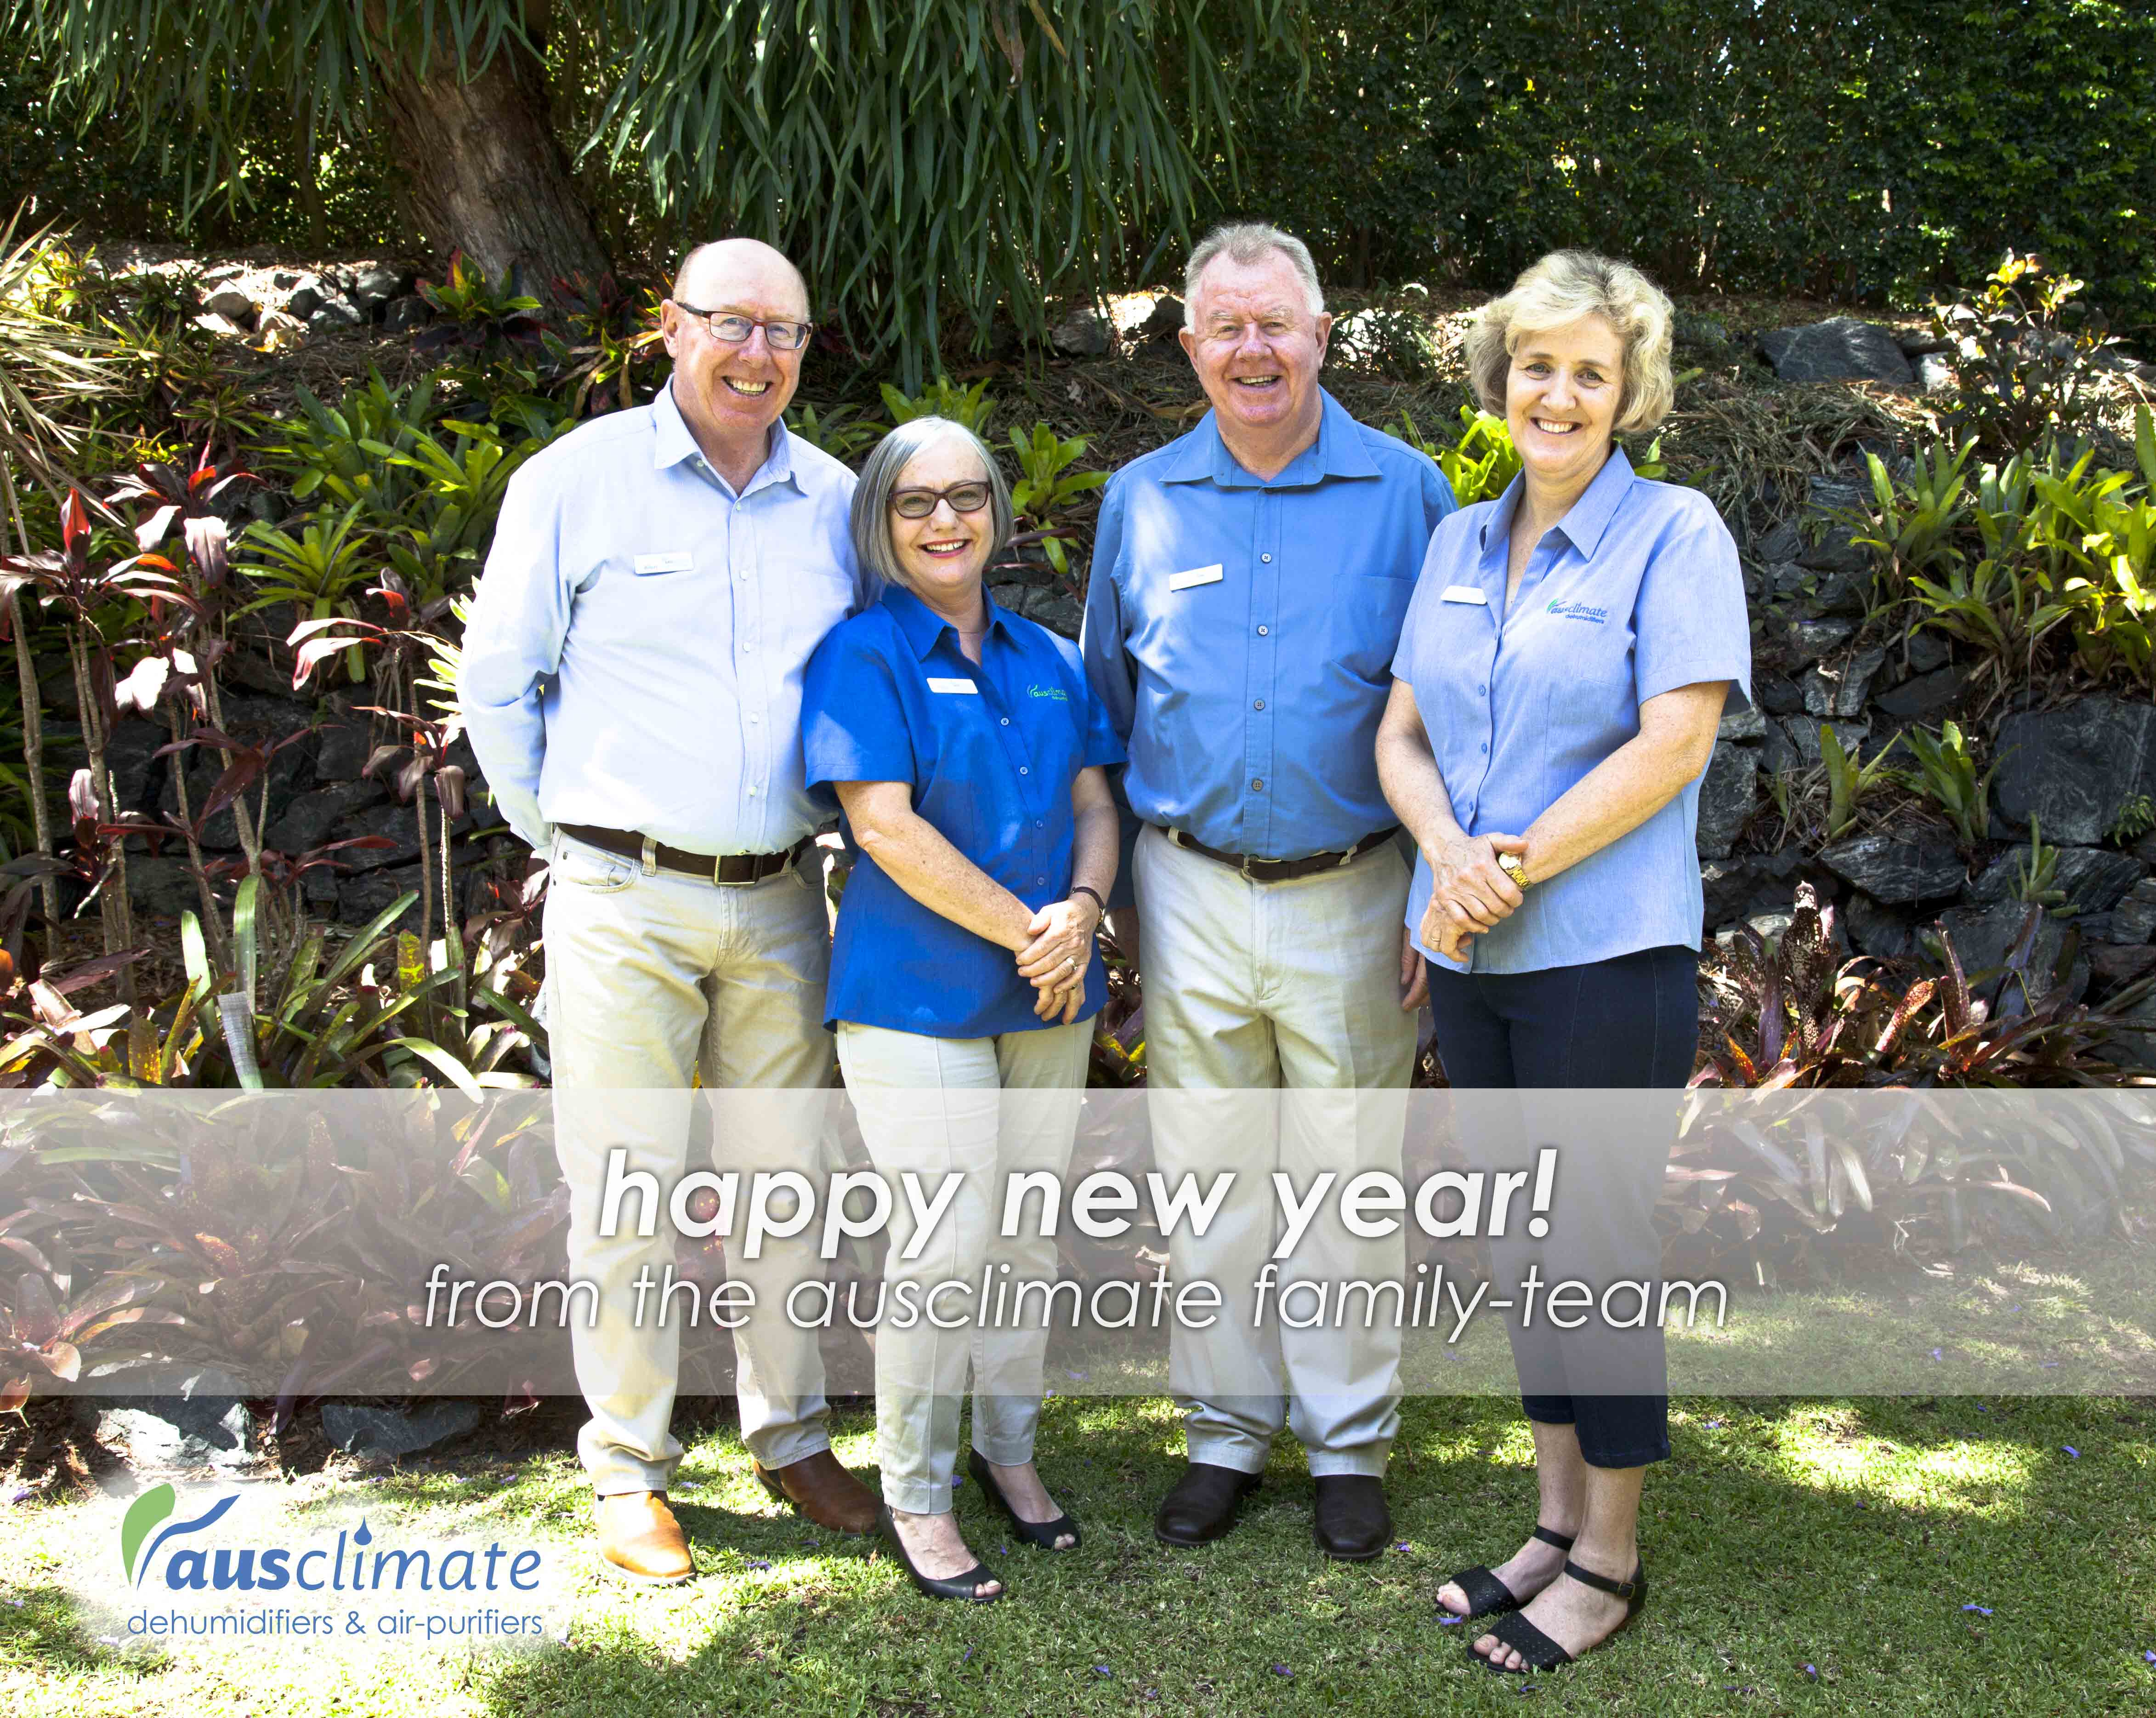 ausclimate-happy-new-year groupphoto